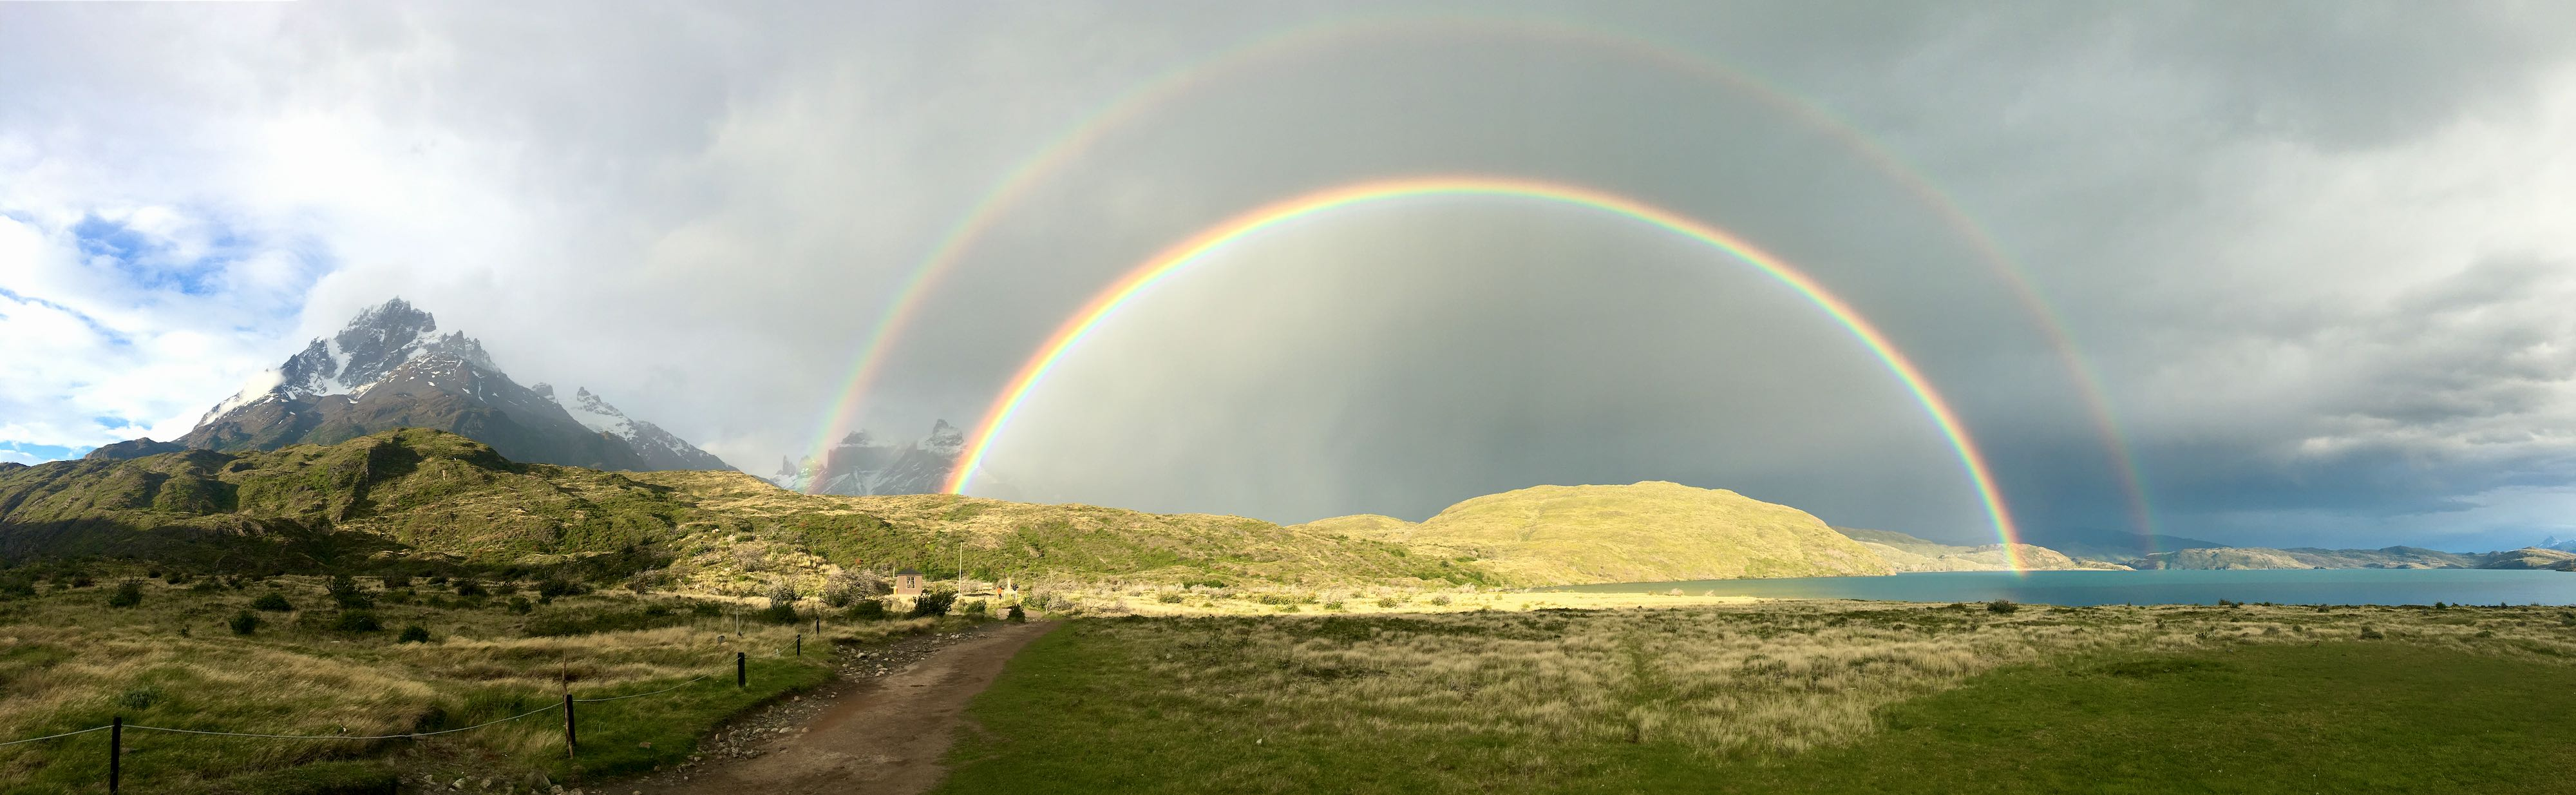 A double rainbow over the mountains while hiking in Patagonia